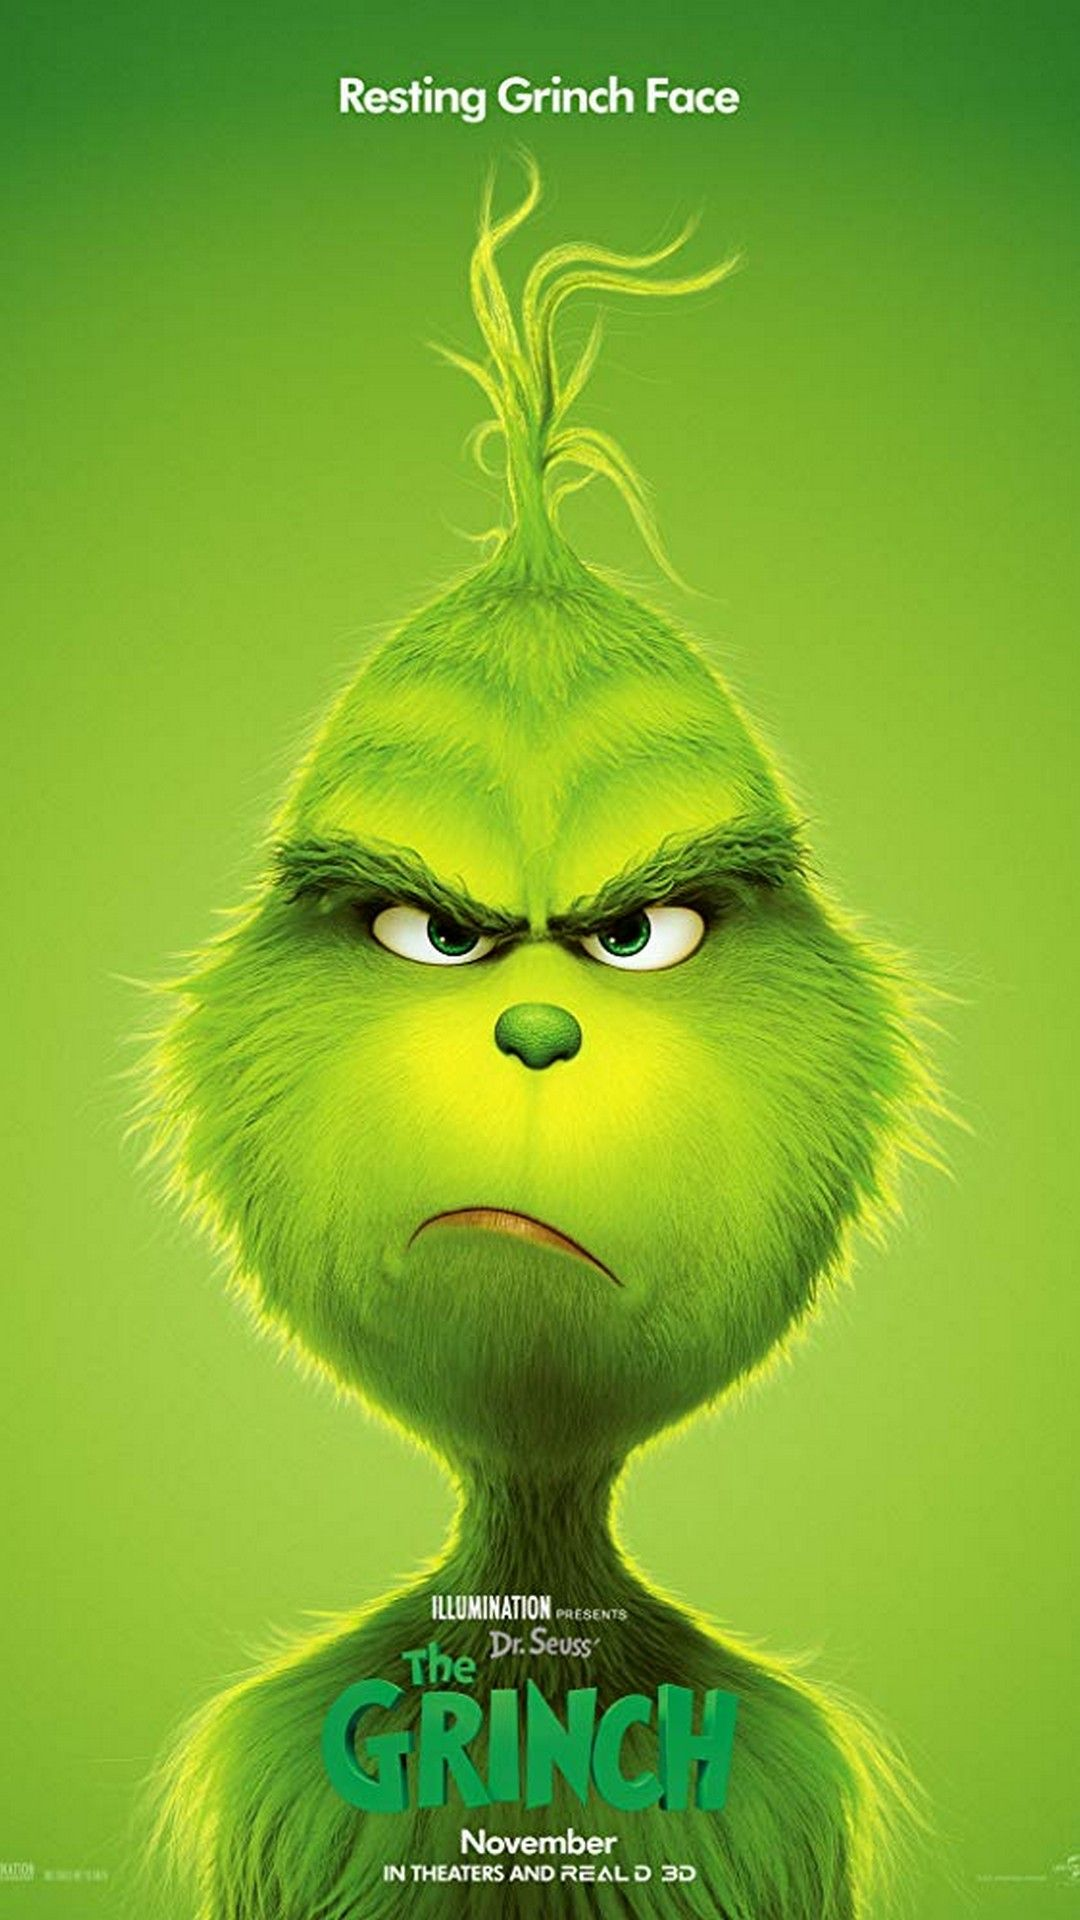 1080x1920 The Grinch Poster HD   2019 Movie Poster Wallpaper HD